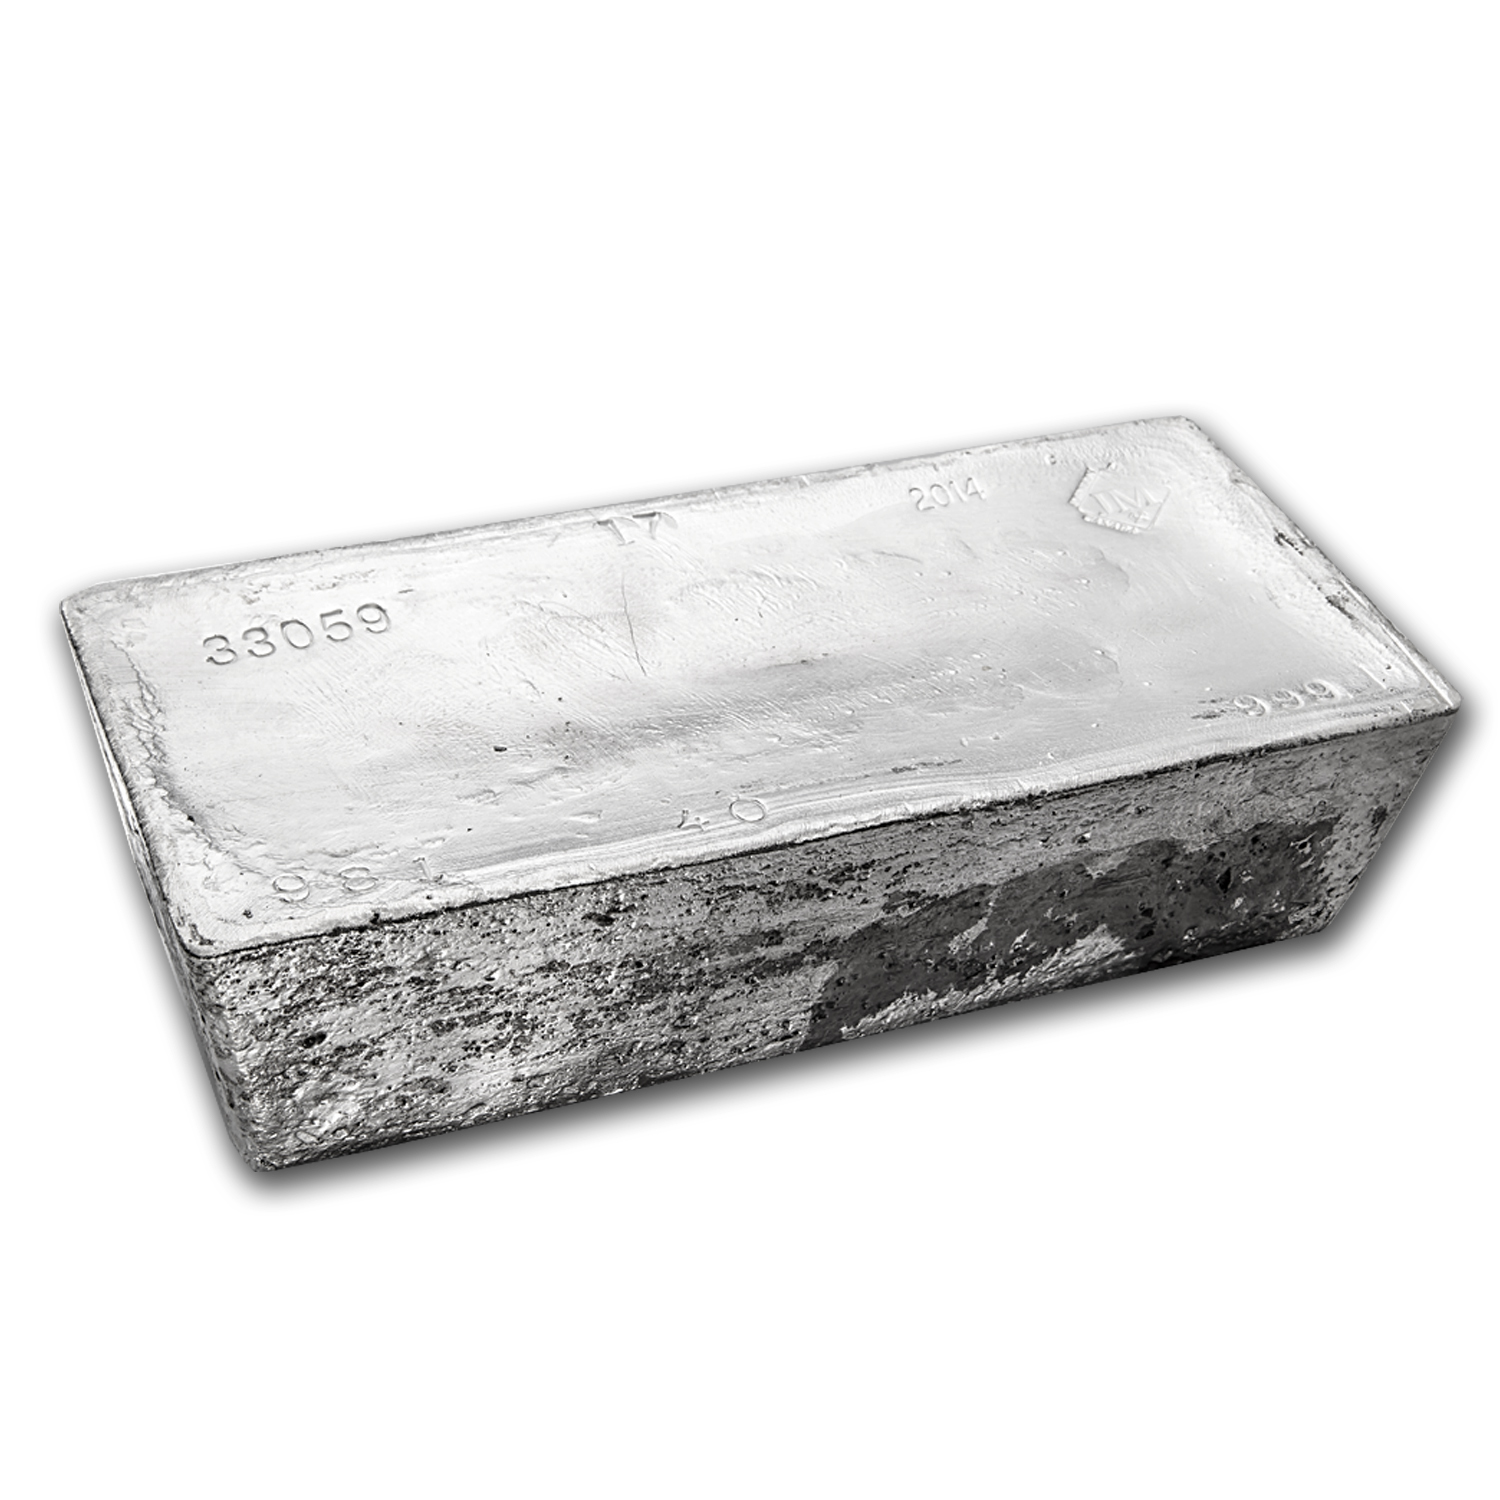 1000 oz +/- Silver Bars - COMEX Deliverable